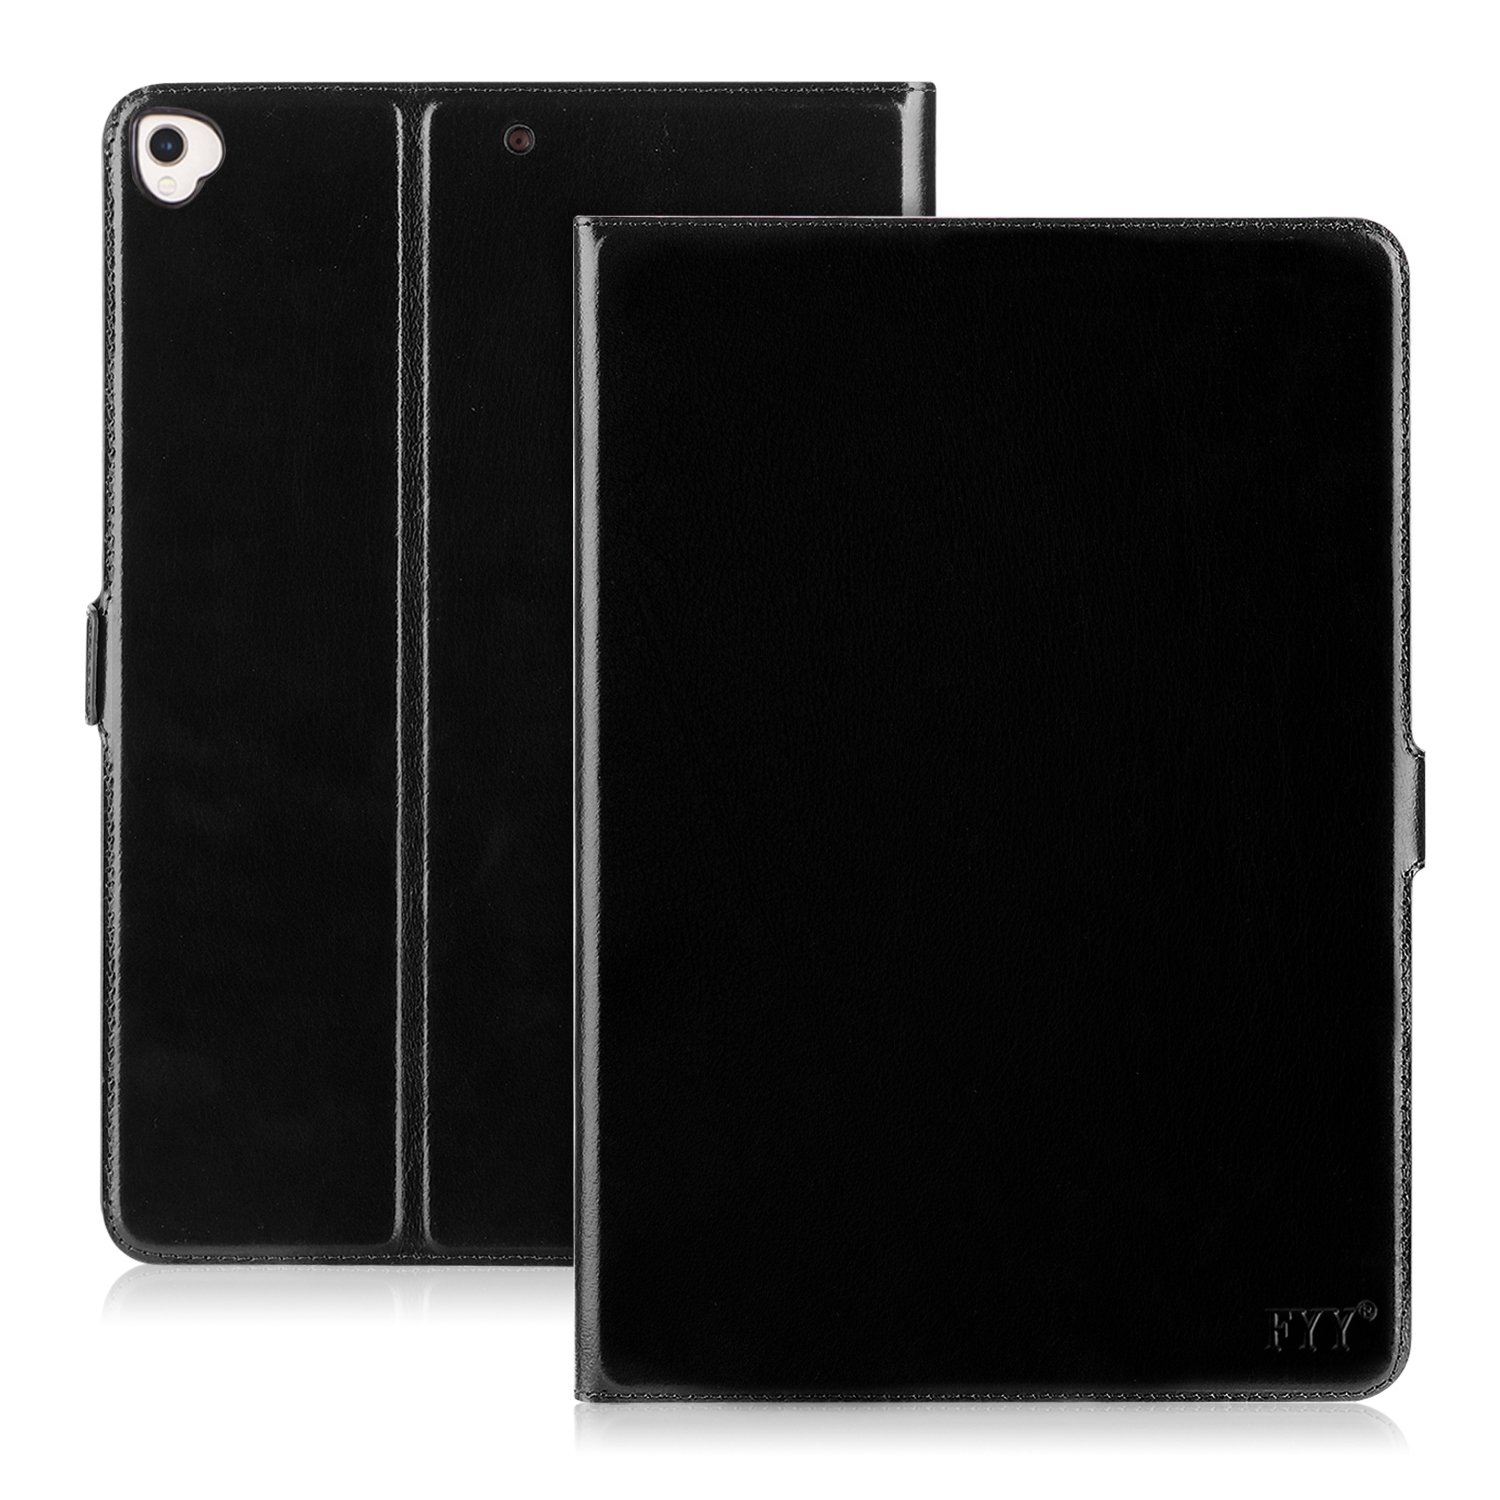 FYY Case for Genuine Leather iPad Pro 12.9 (Compatible with 2017 and 2015 Model), Handmade Case with Kickstand Function for Apple iPad Pro 12.9 (Both 2017 and 2015) Black